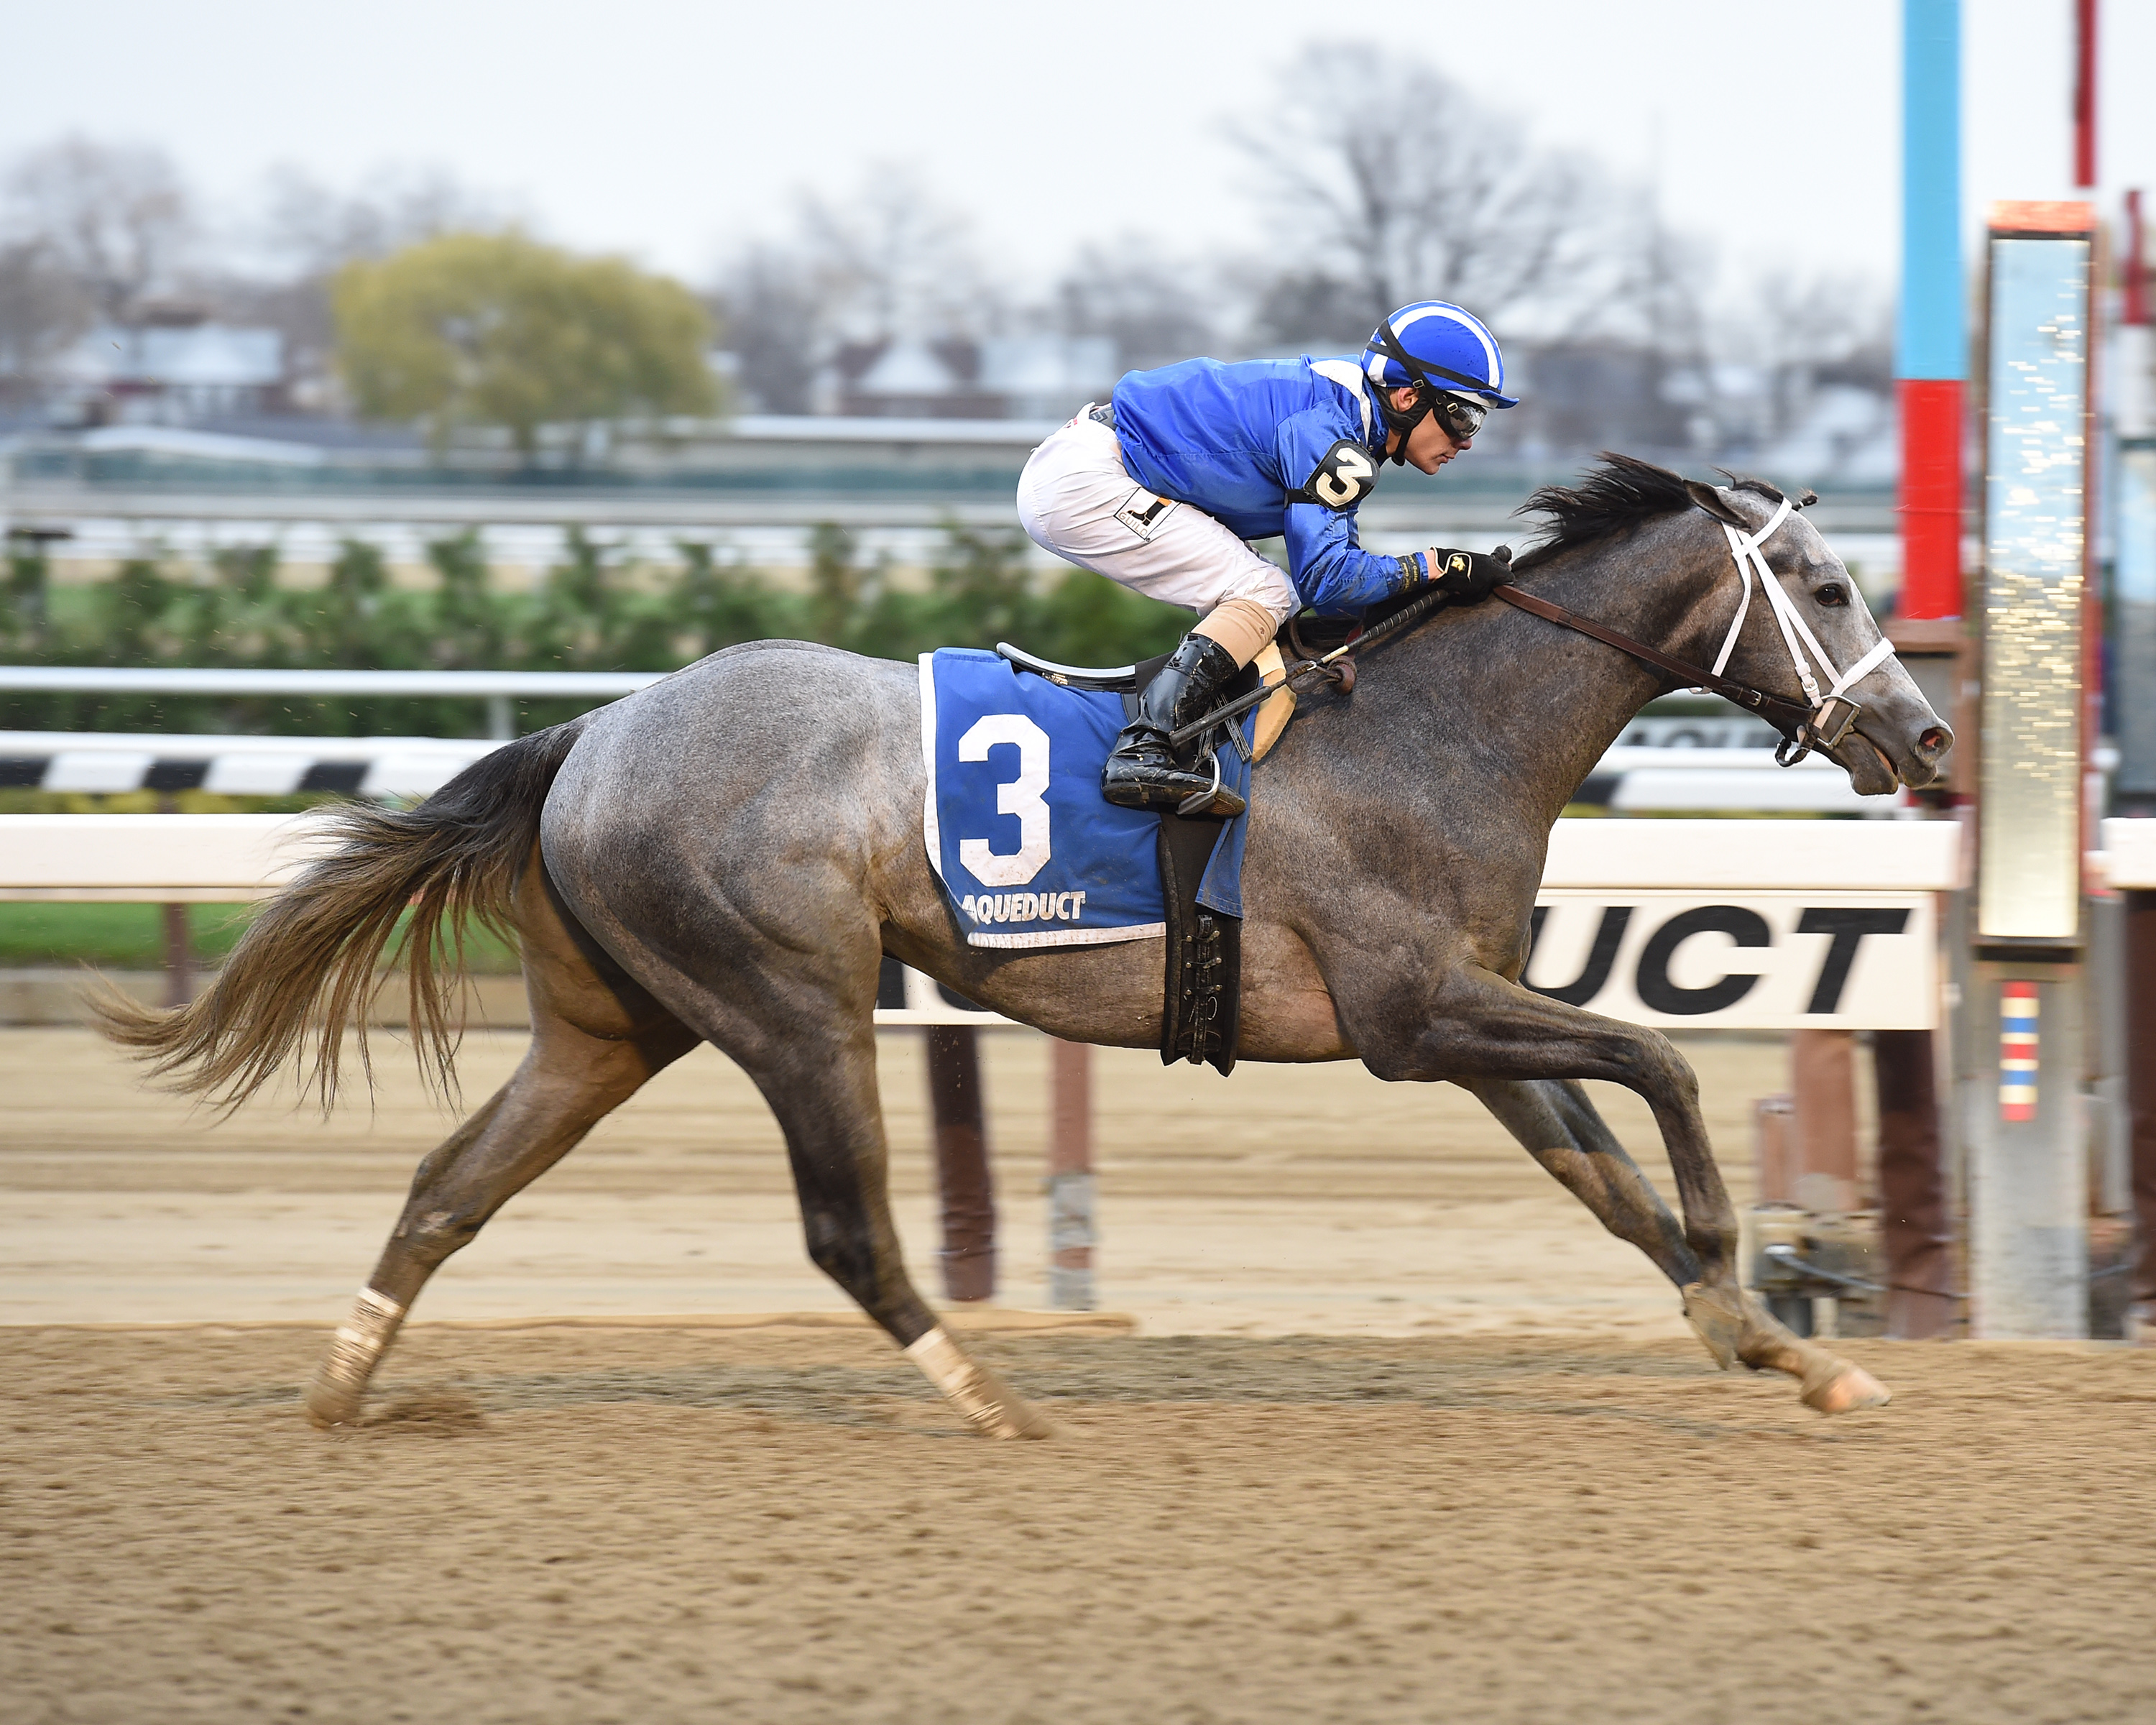 In this Nov. 28, 2015, photo provided by the New York Racing Association, Mohaymen, jockey Junior Alvarado up, wins the Remsen Stakes horse race at Aqueduct Racetrack in New York. The leading candidates for the Kentucky Derby are on schedule for a one-tim